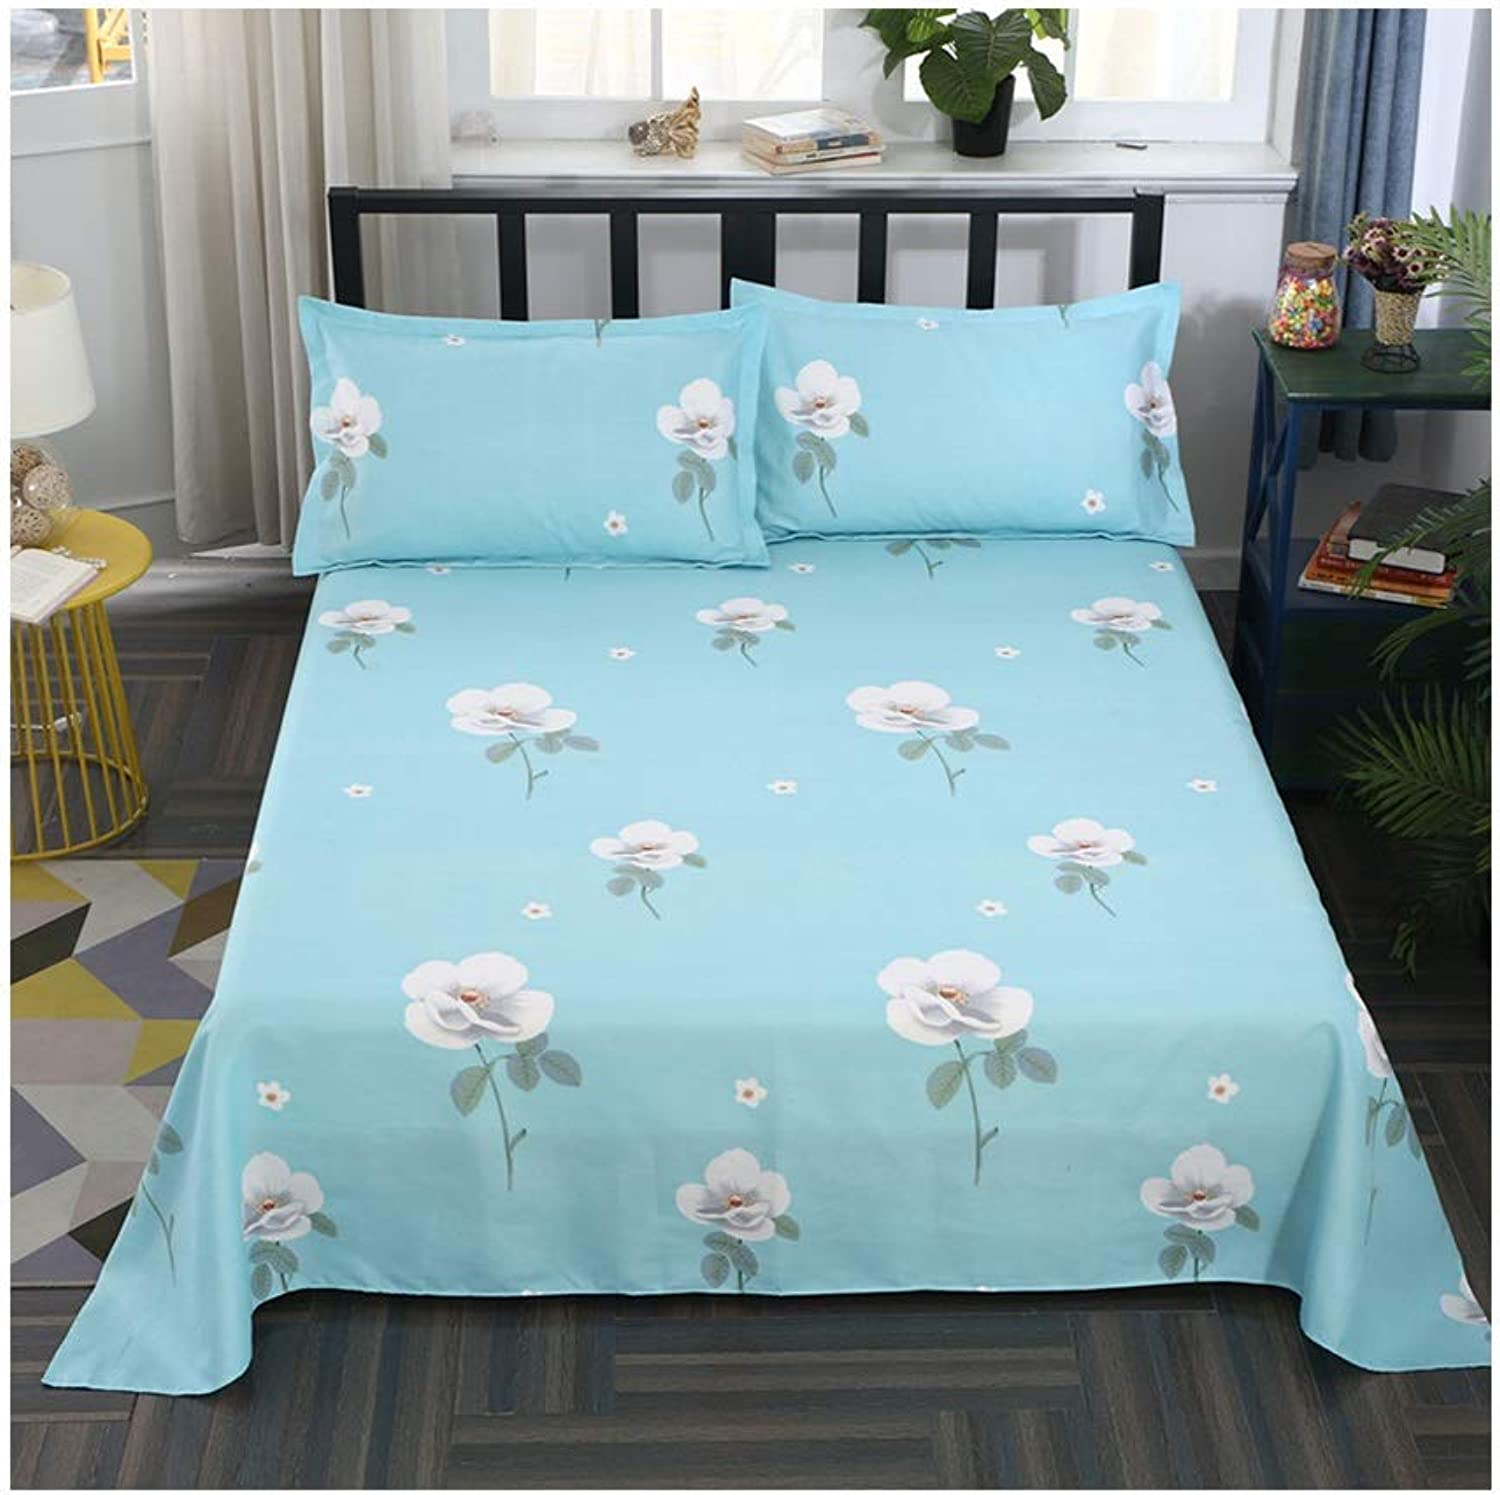 Sheets Single Piece Sanding Thick Single 1.8 1.5 1.2m Female Students Single Dormitory Double 2.5 2.3m Bed Cover (color   C, Size   230  230cm)